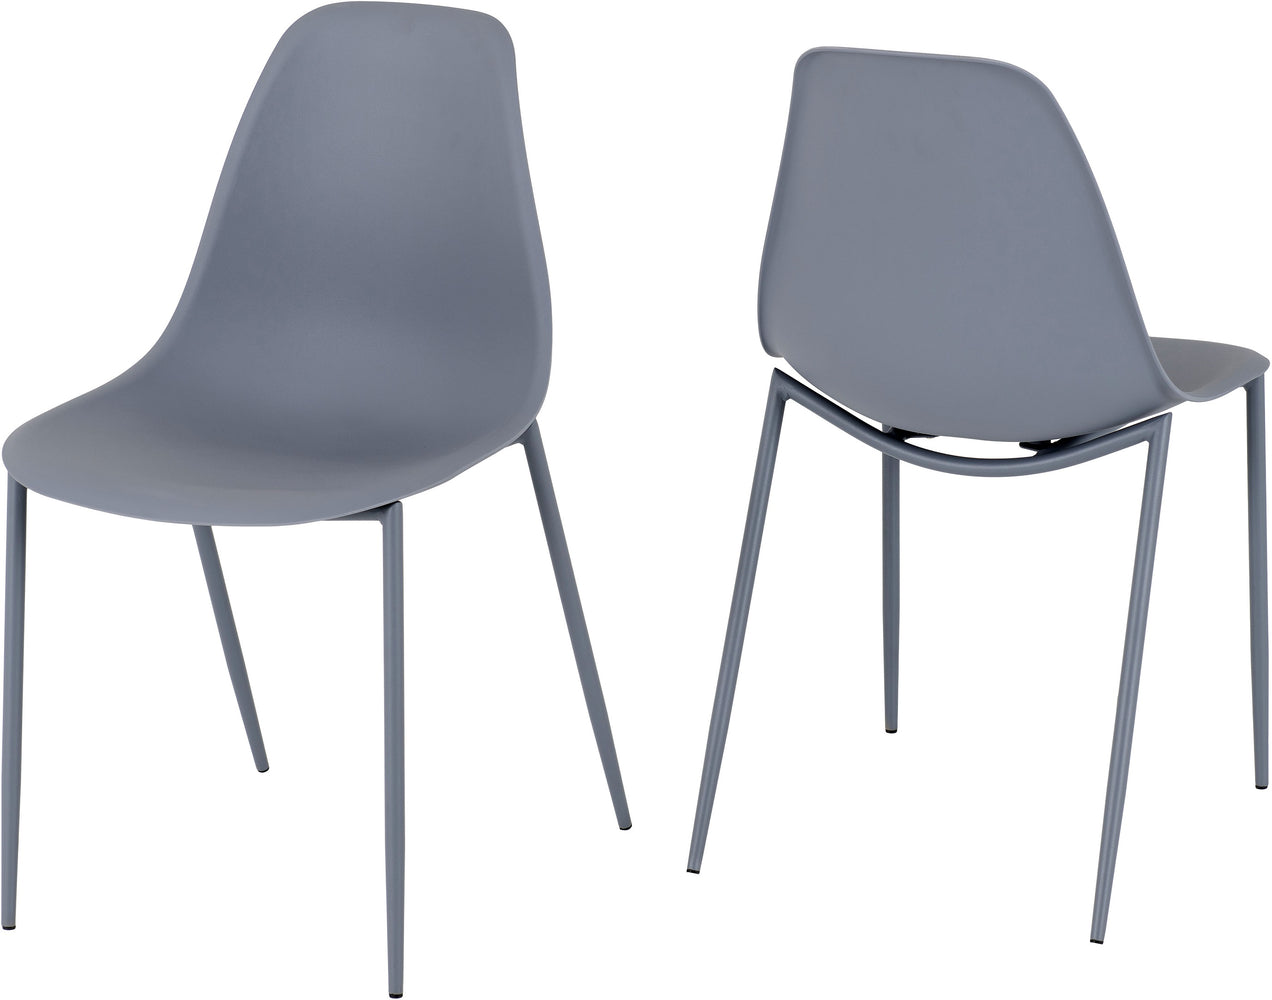 Lindon Chair in Grey